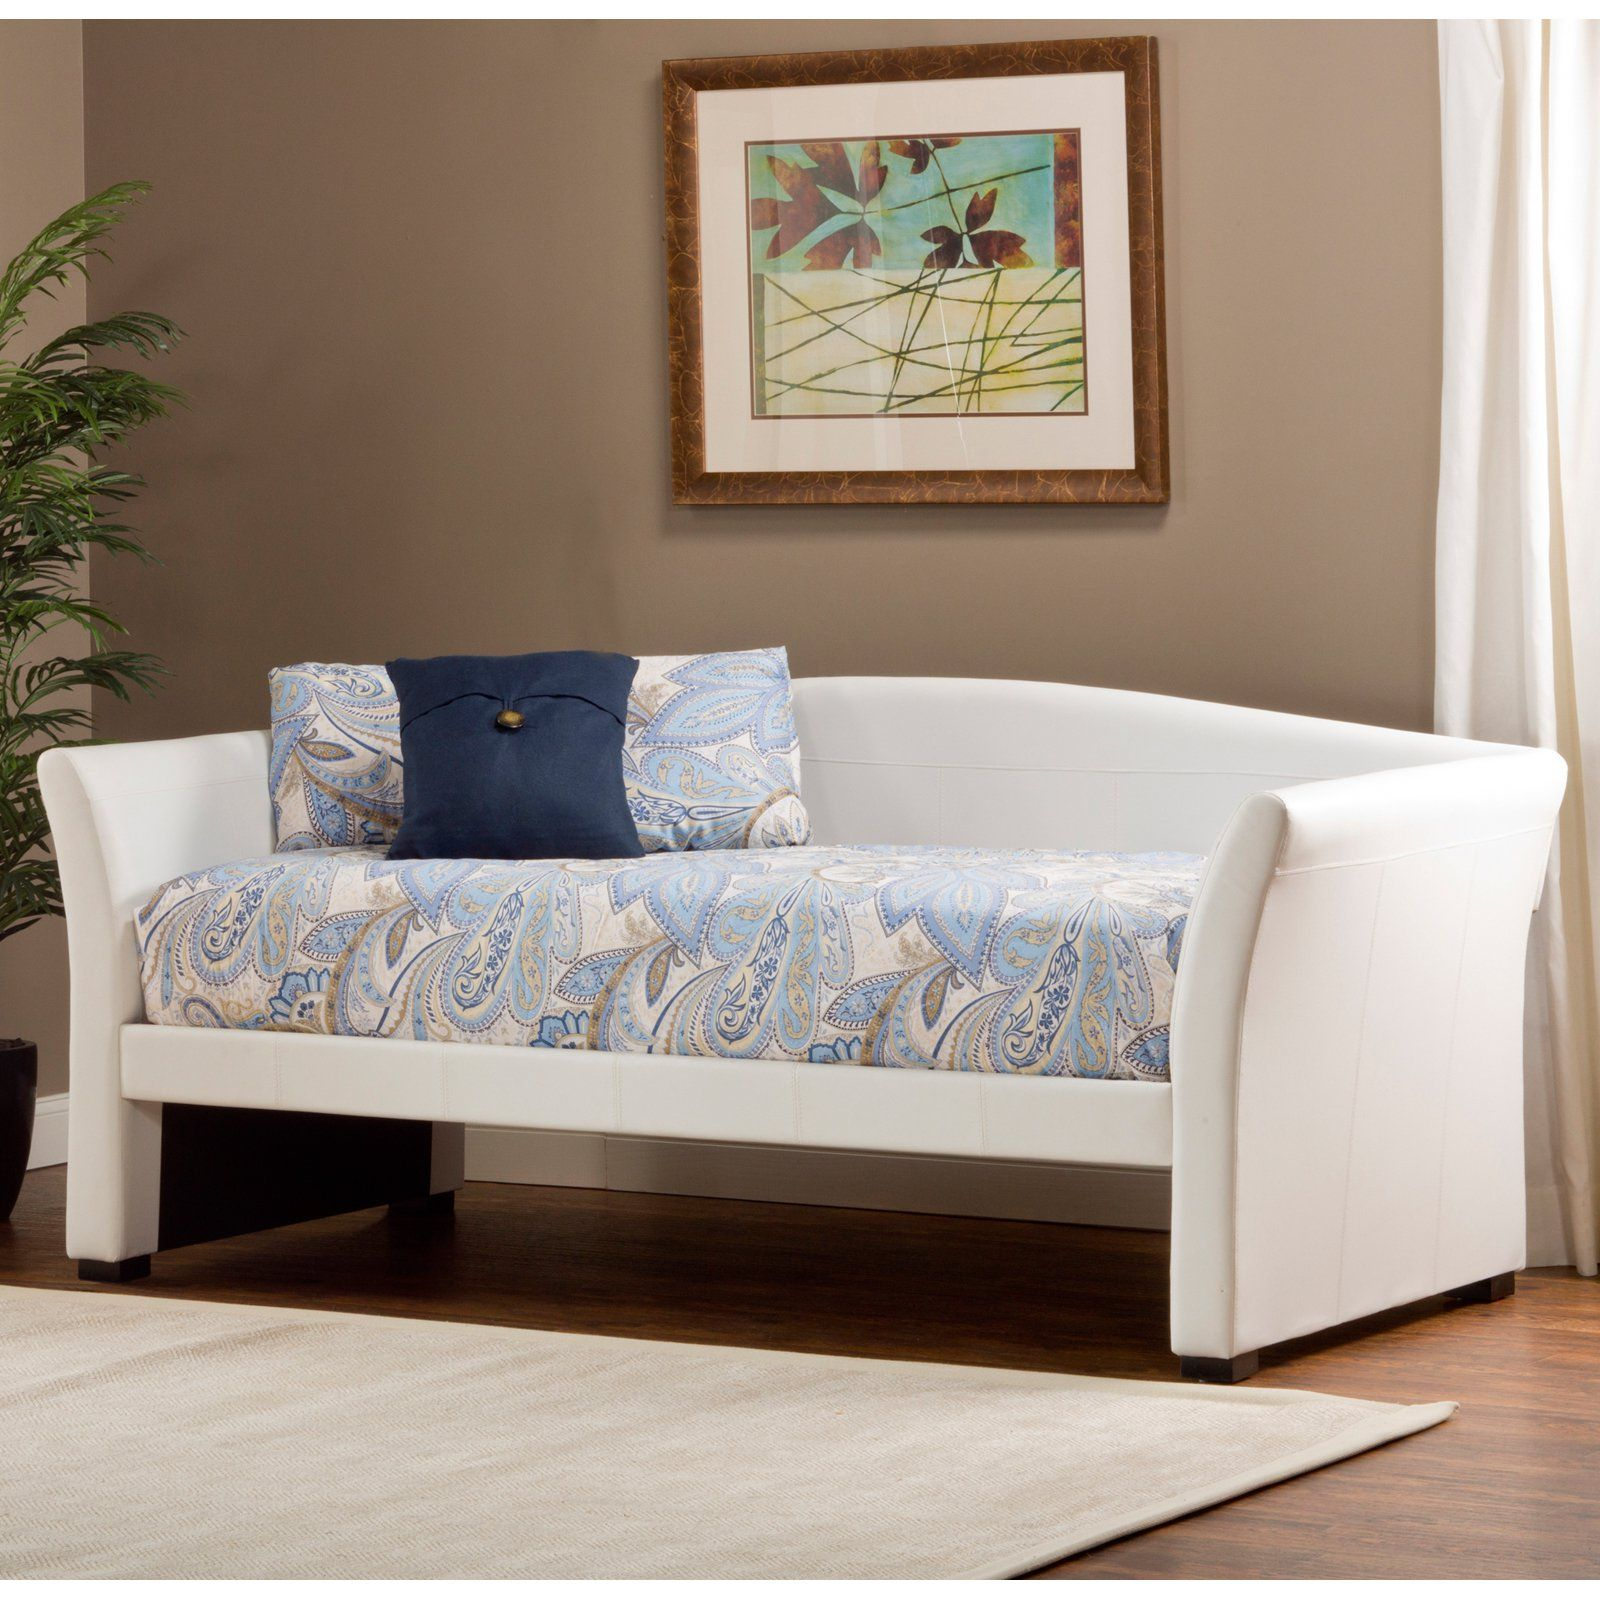 Montgomery Daybed White The sleek look of the